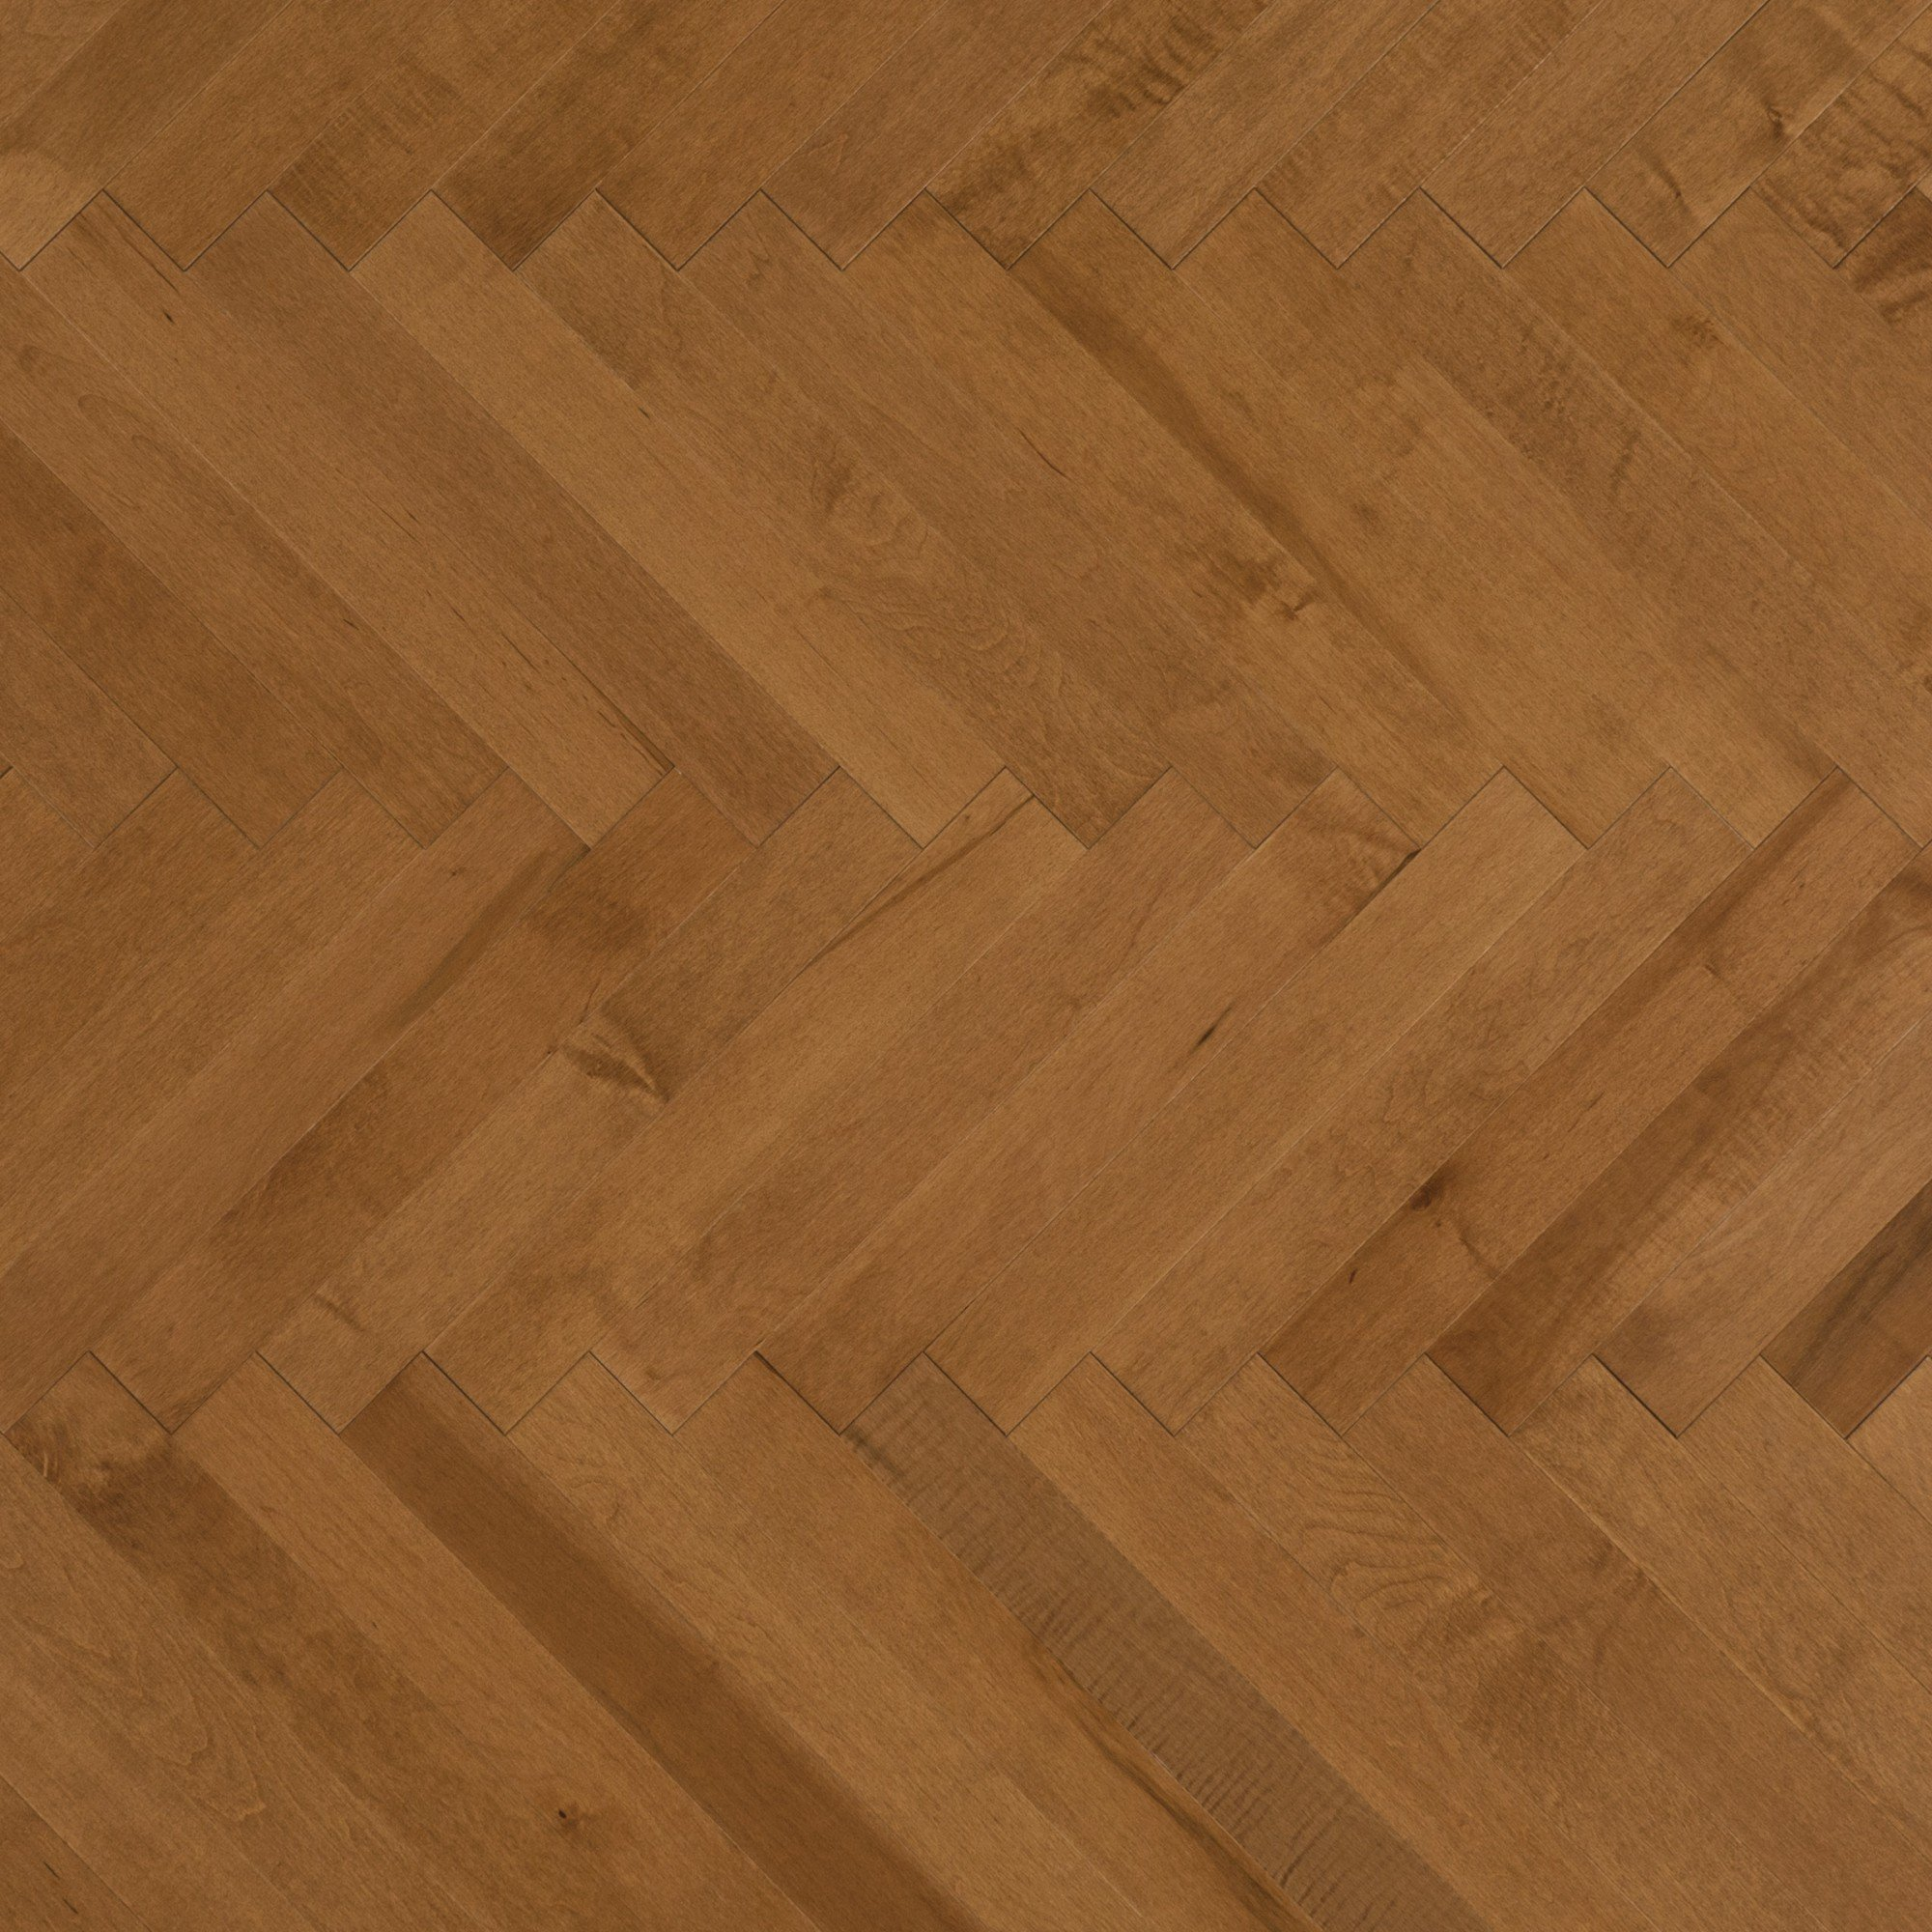 Maple Sierra Exclusive Smooth - Floor image